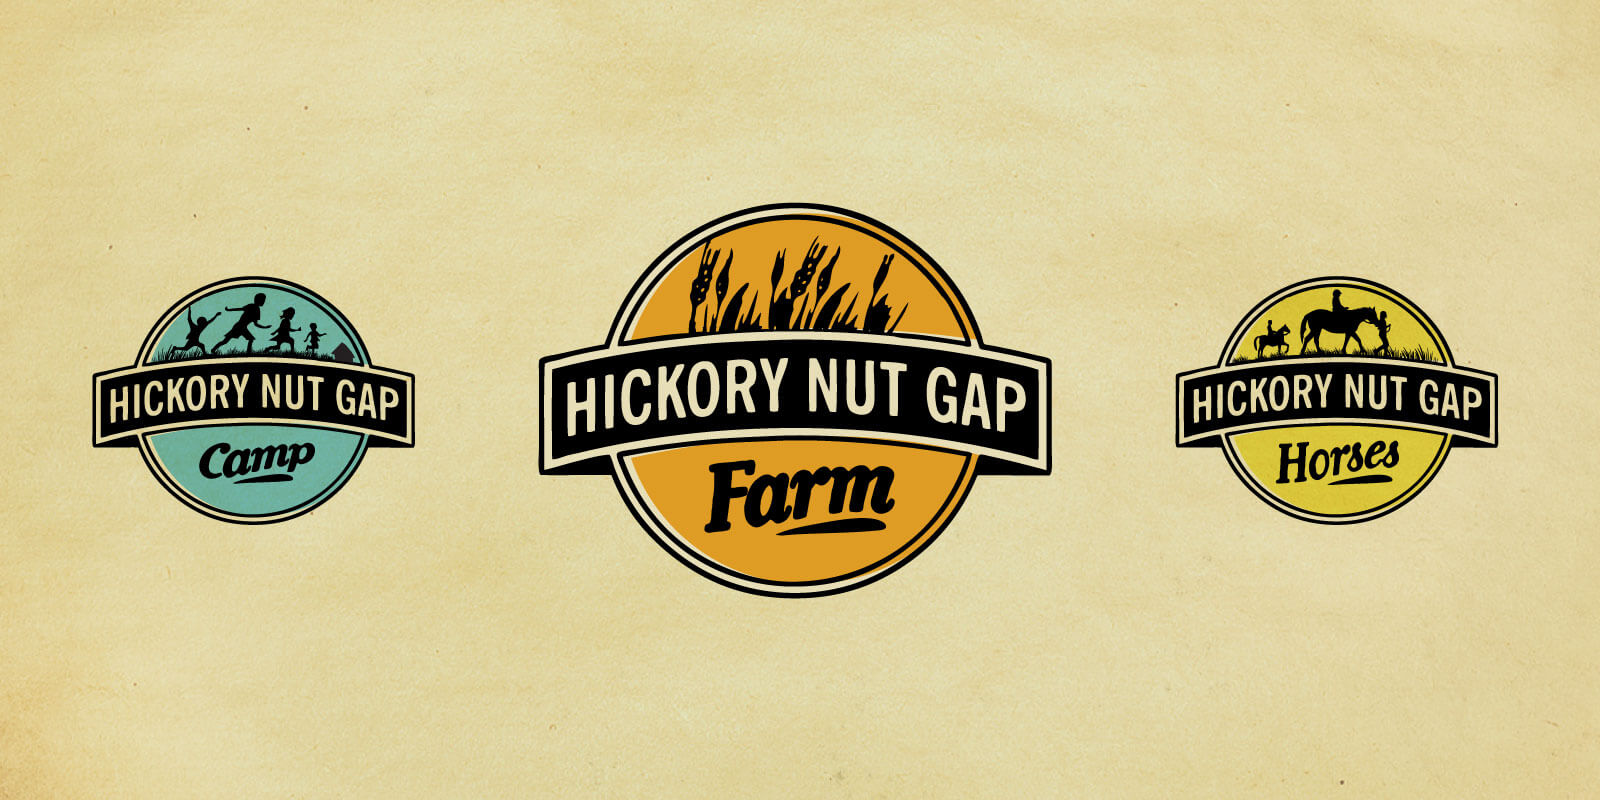 Hickory Nut Gap companion logos for farm (orange and black), camp (blue and black), and horse camp (gold and black). Shown against parchment paper background.